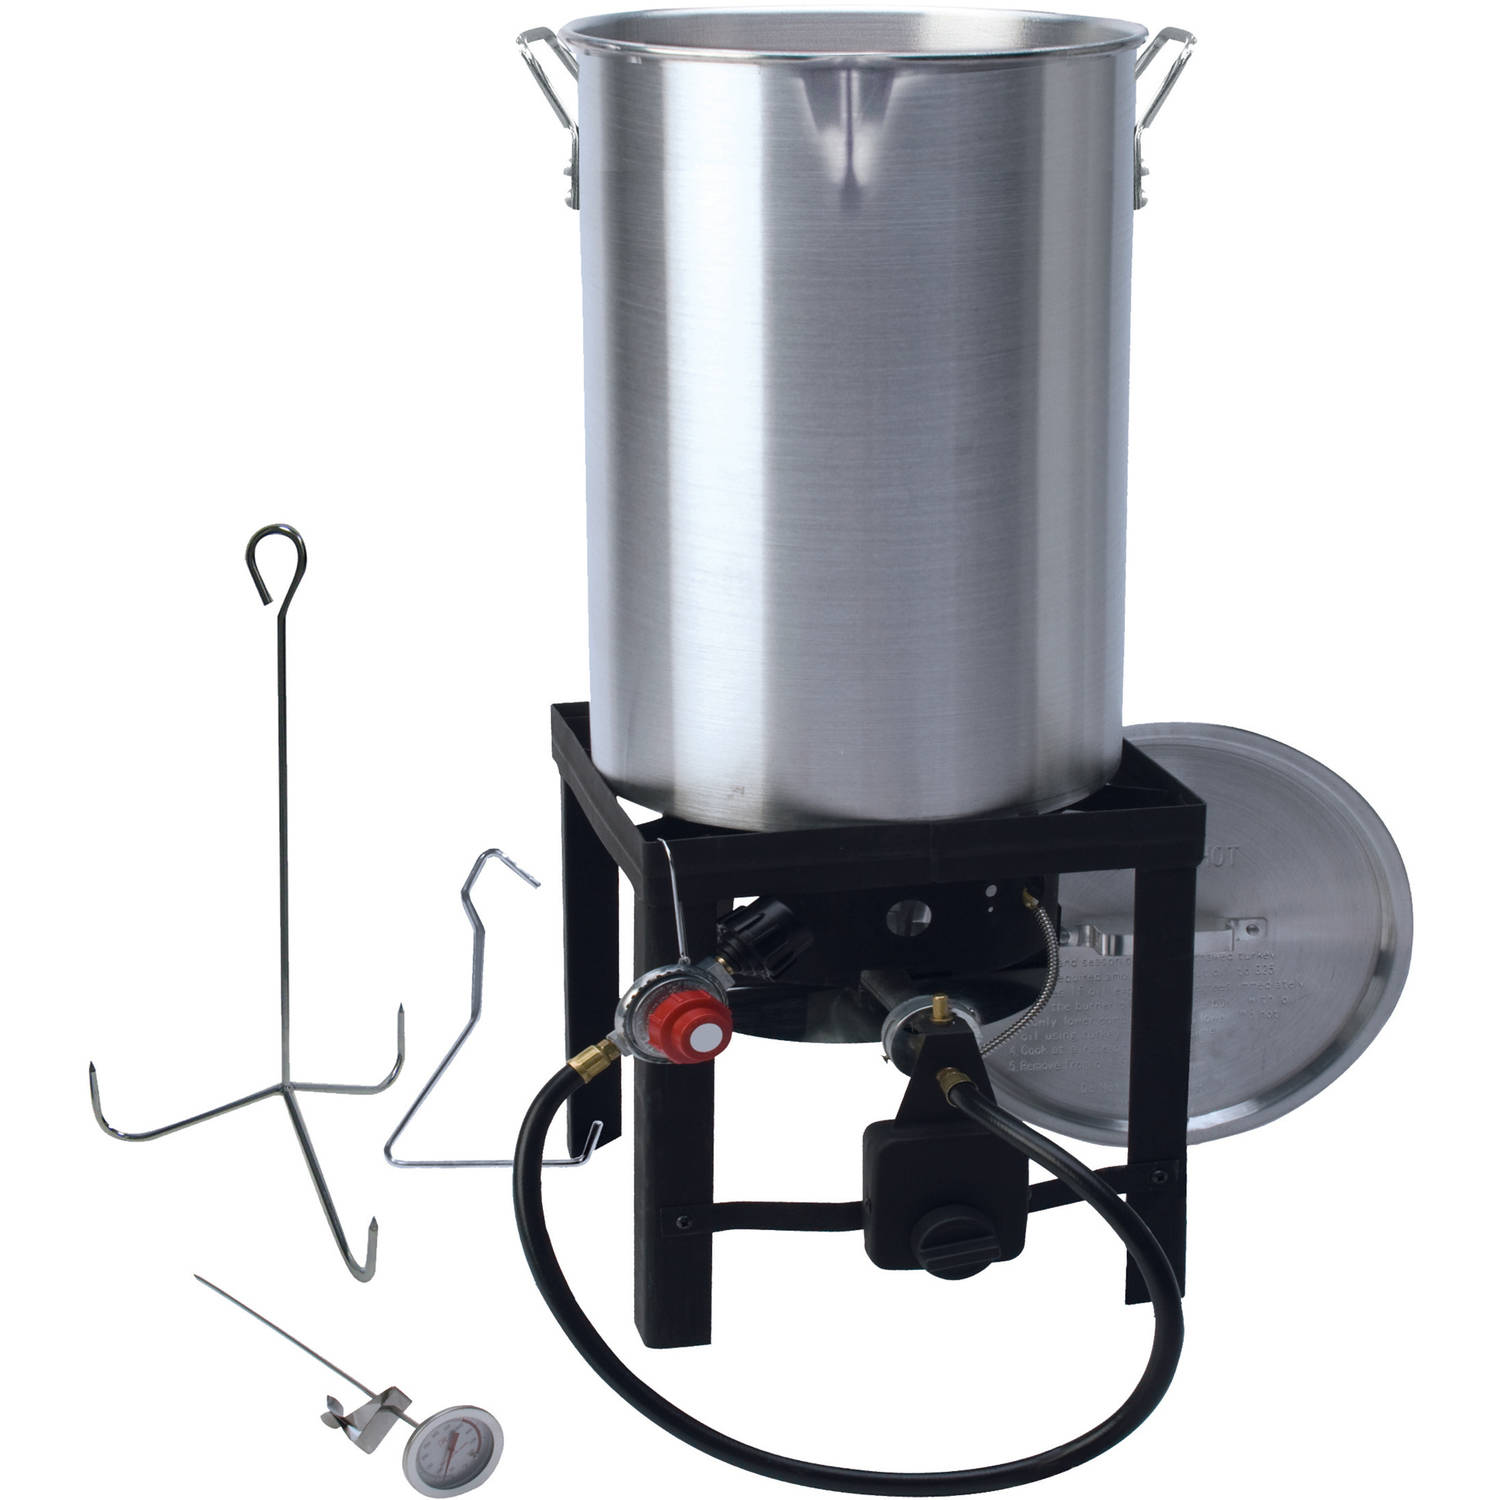 Walmart 30 qt Turkey Fryer with Spout